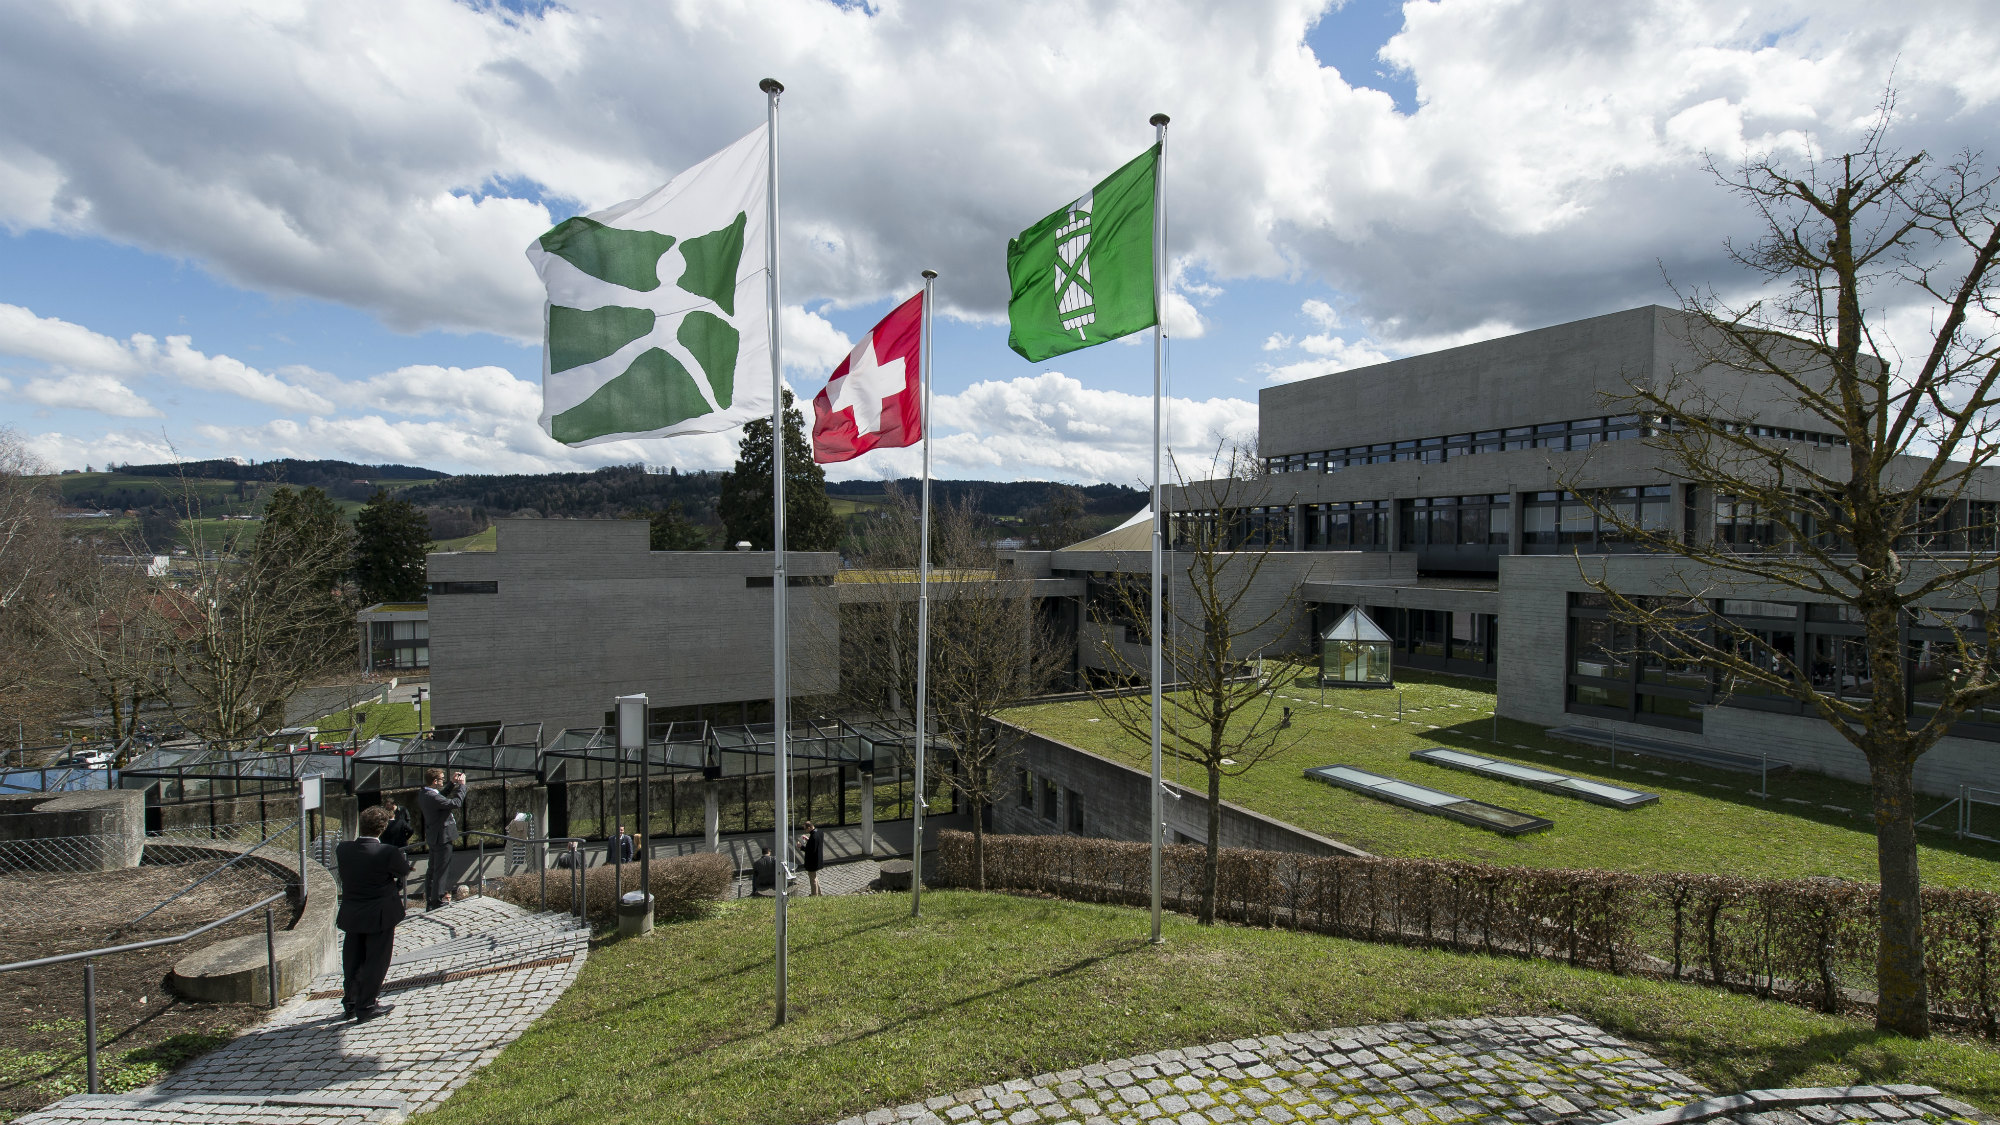 Flag of Switzerland, of the canton of St.Gallen and of the University of St.Gallen (HSG)